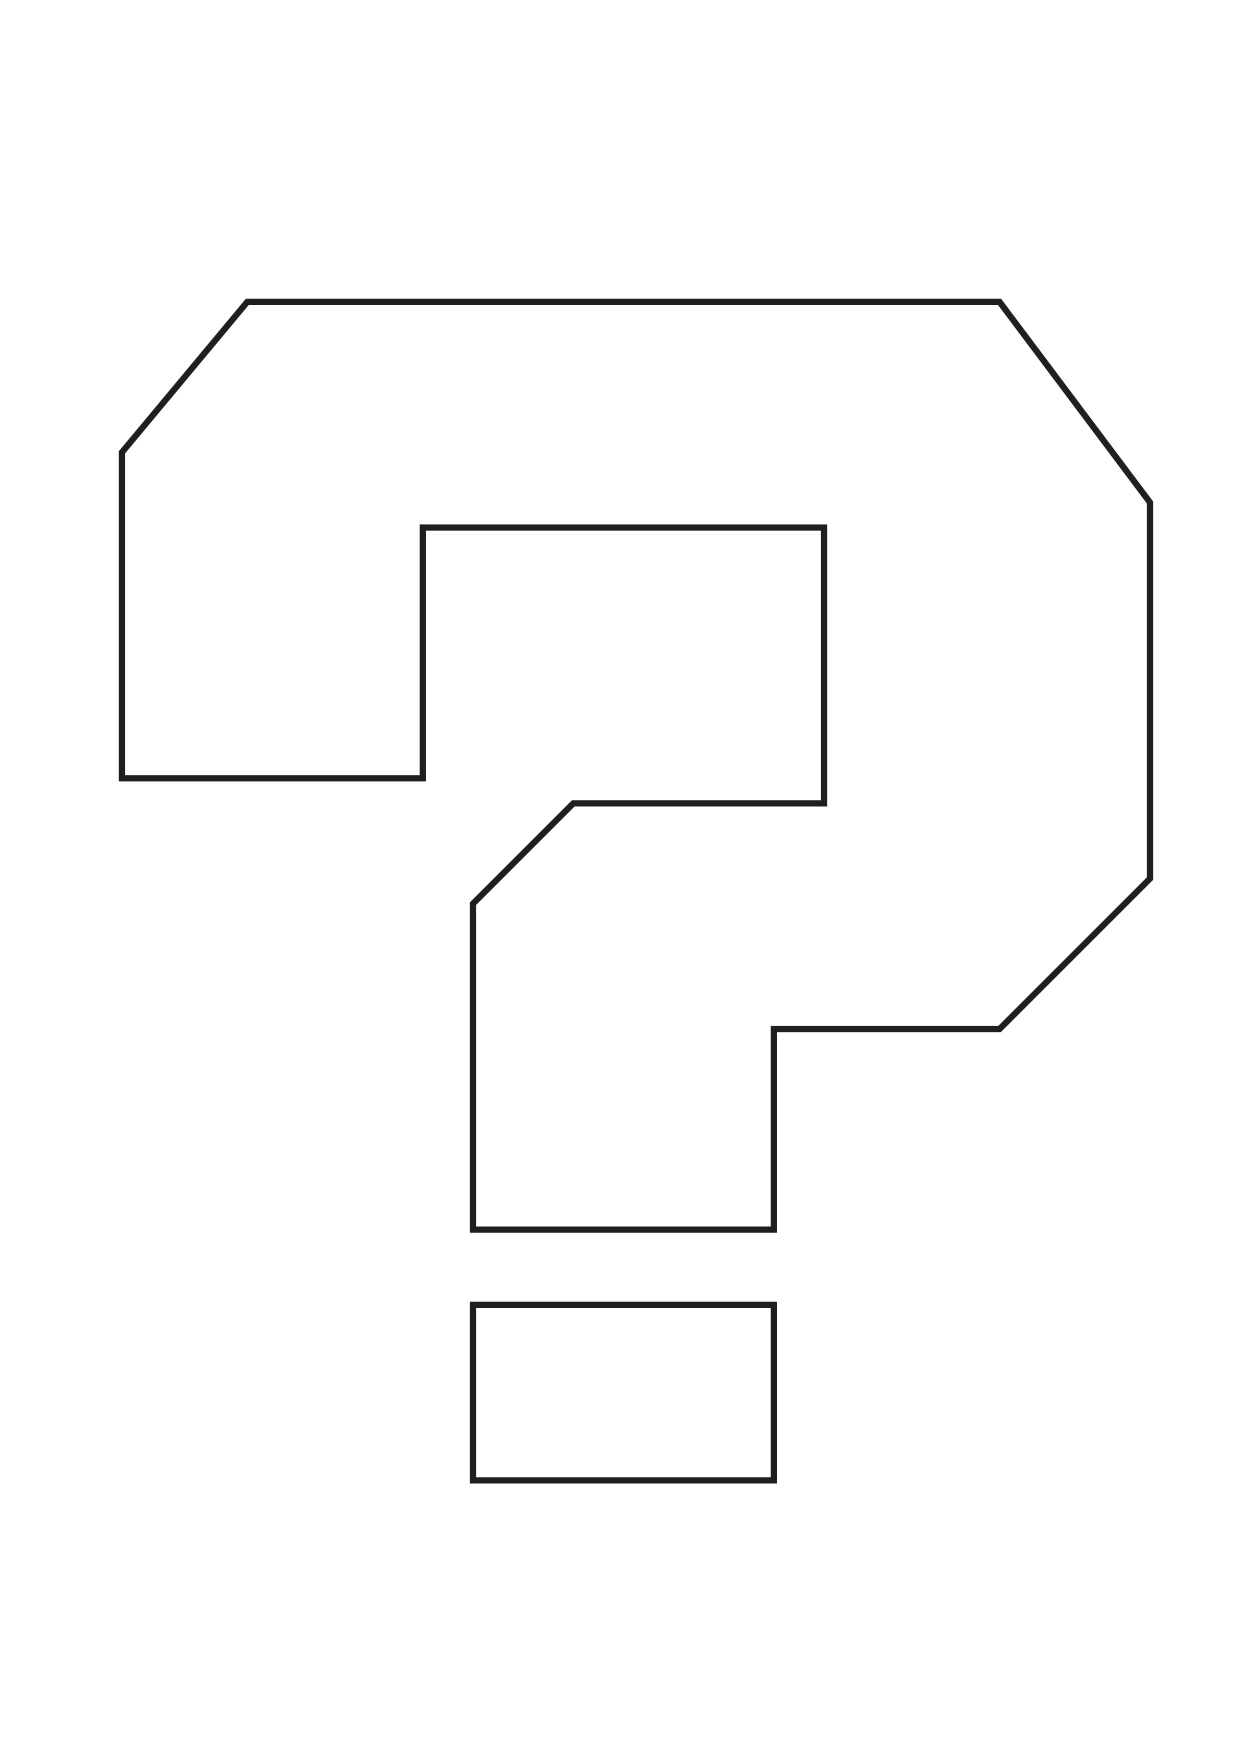 Coloring pages question mark - Question Mark Coloring Page